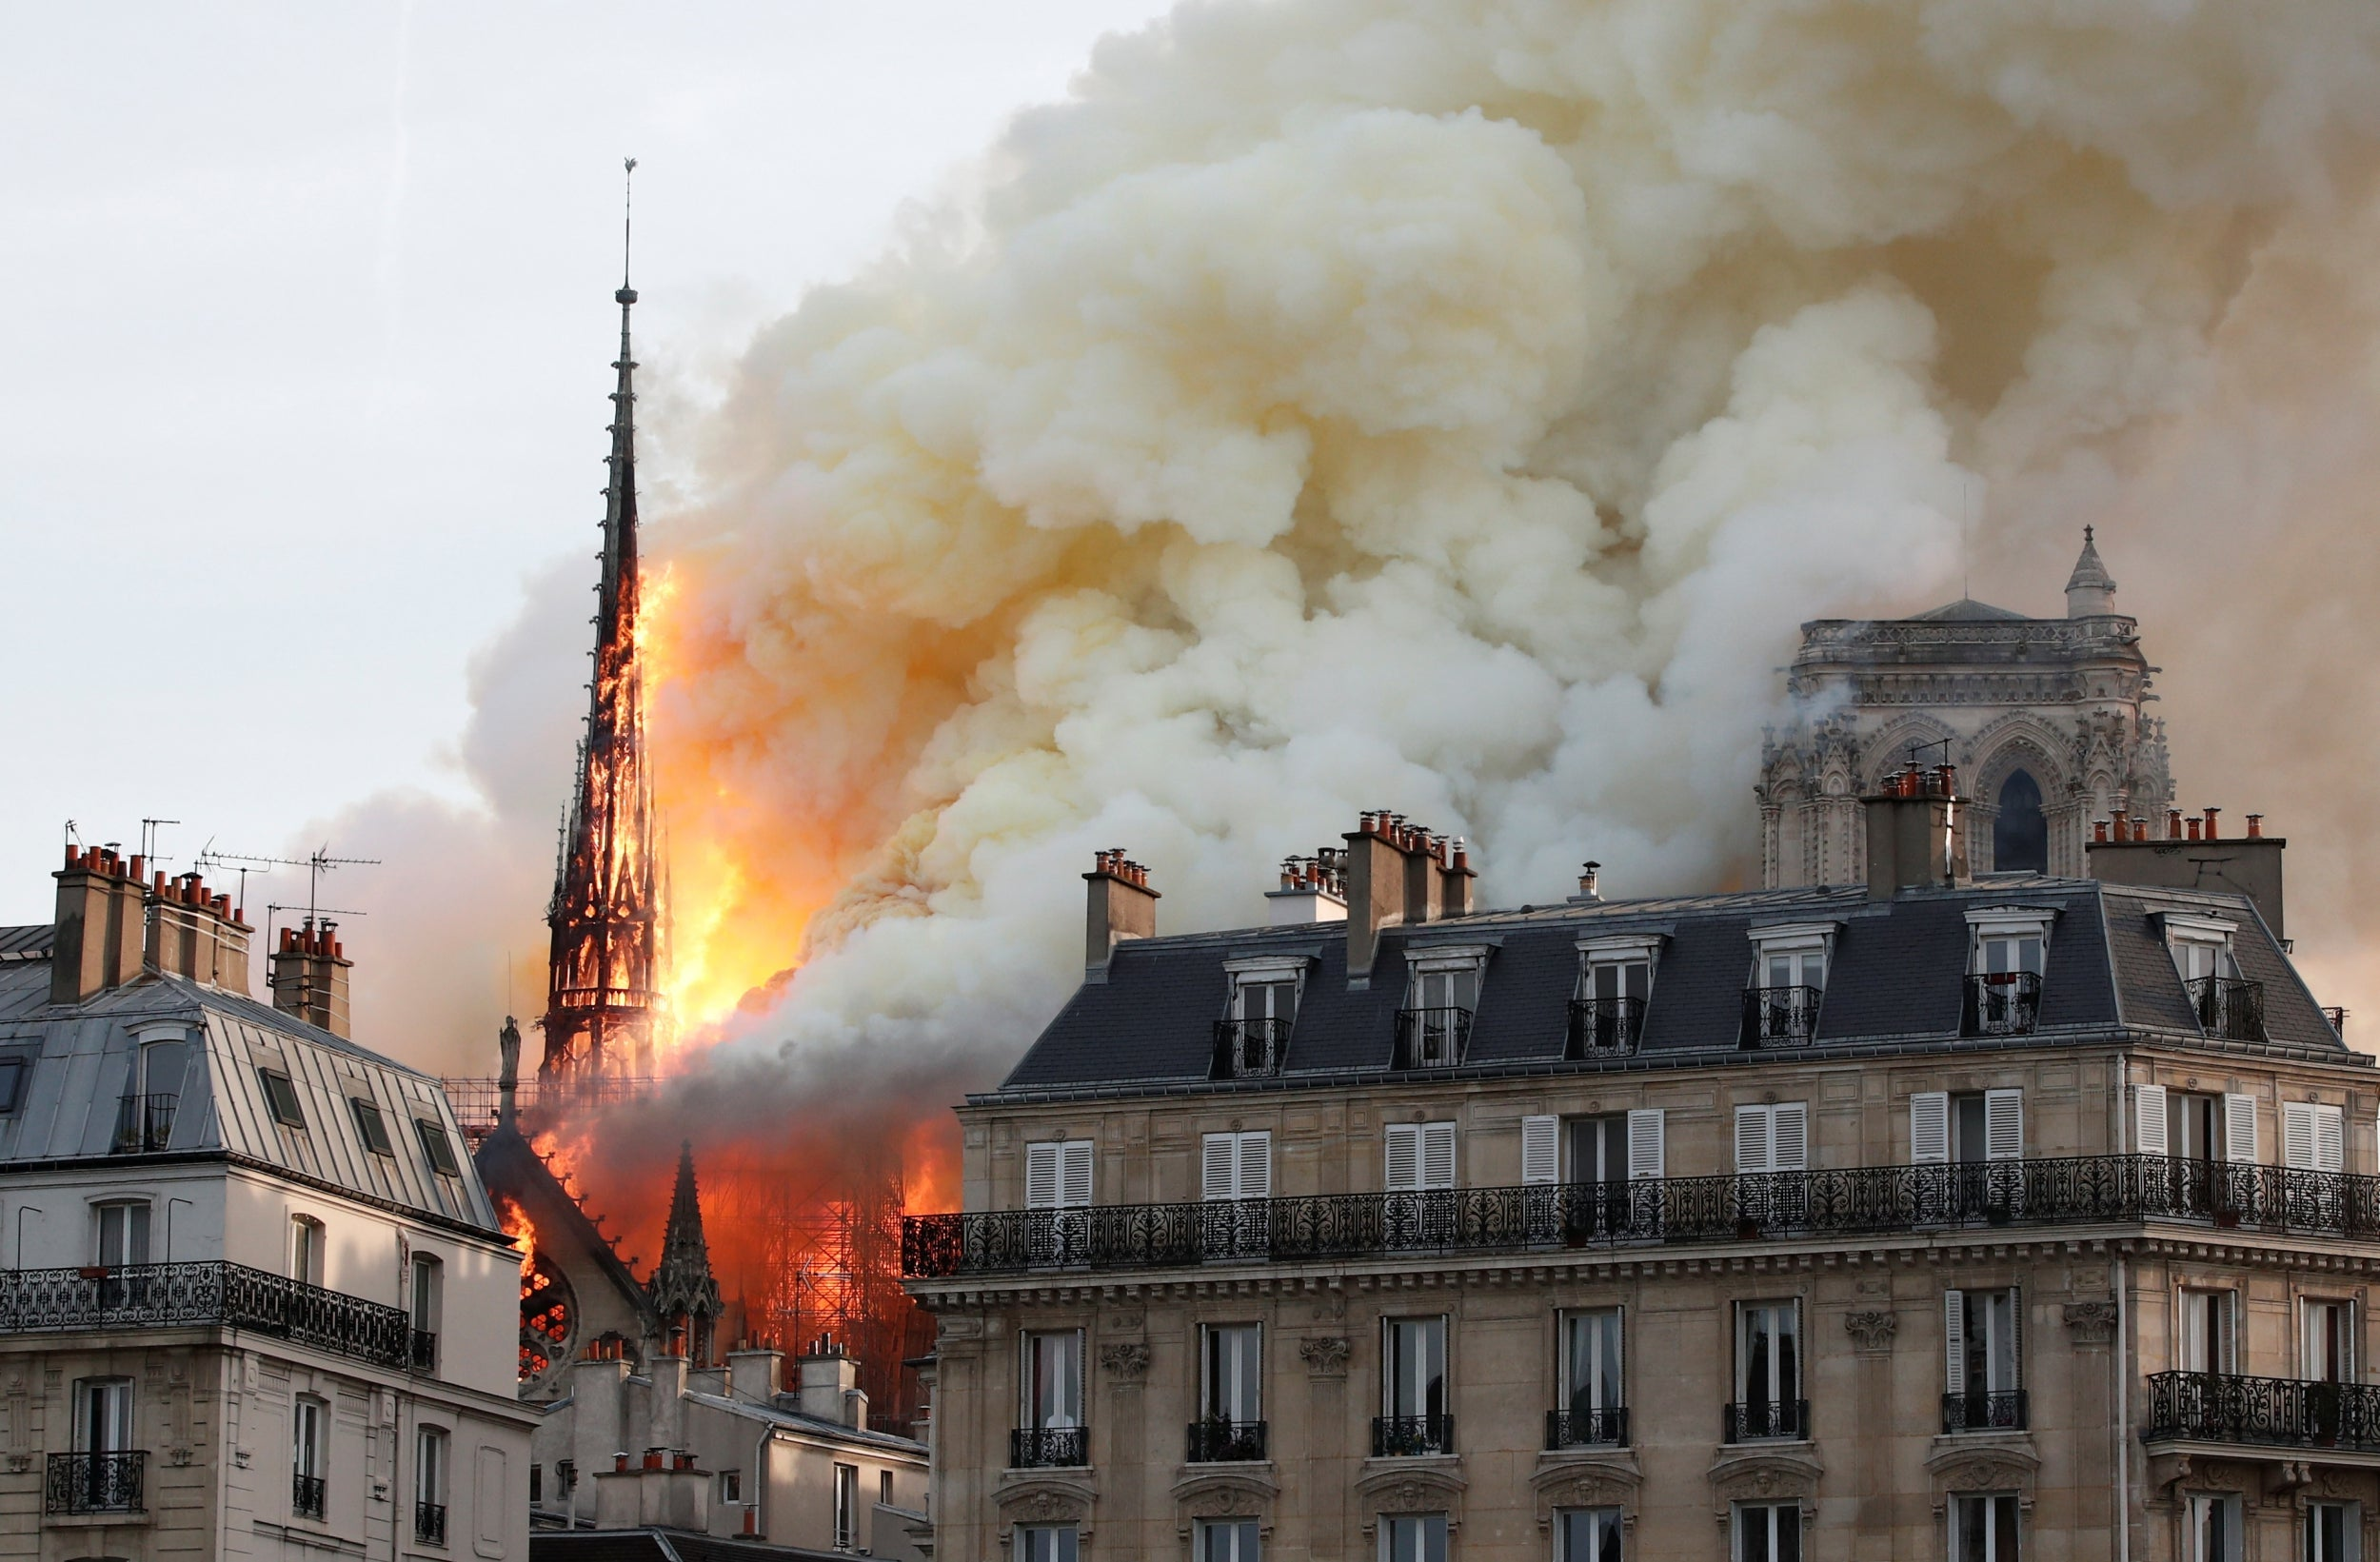 Notre Dame cathedral fire: Devastating pictures and videos show the centuries-old landmark being destroyed